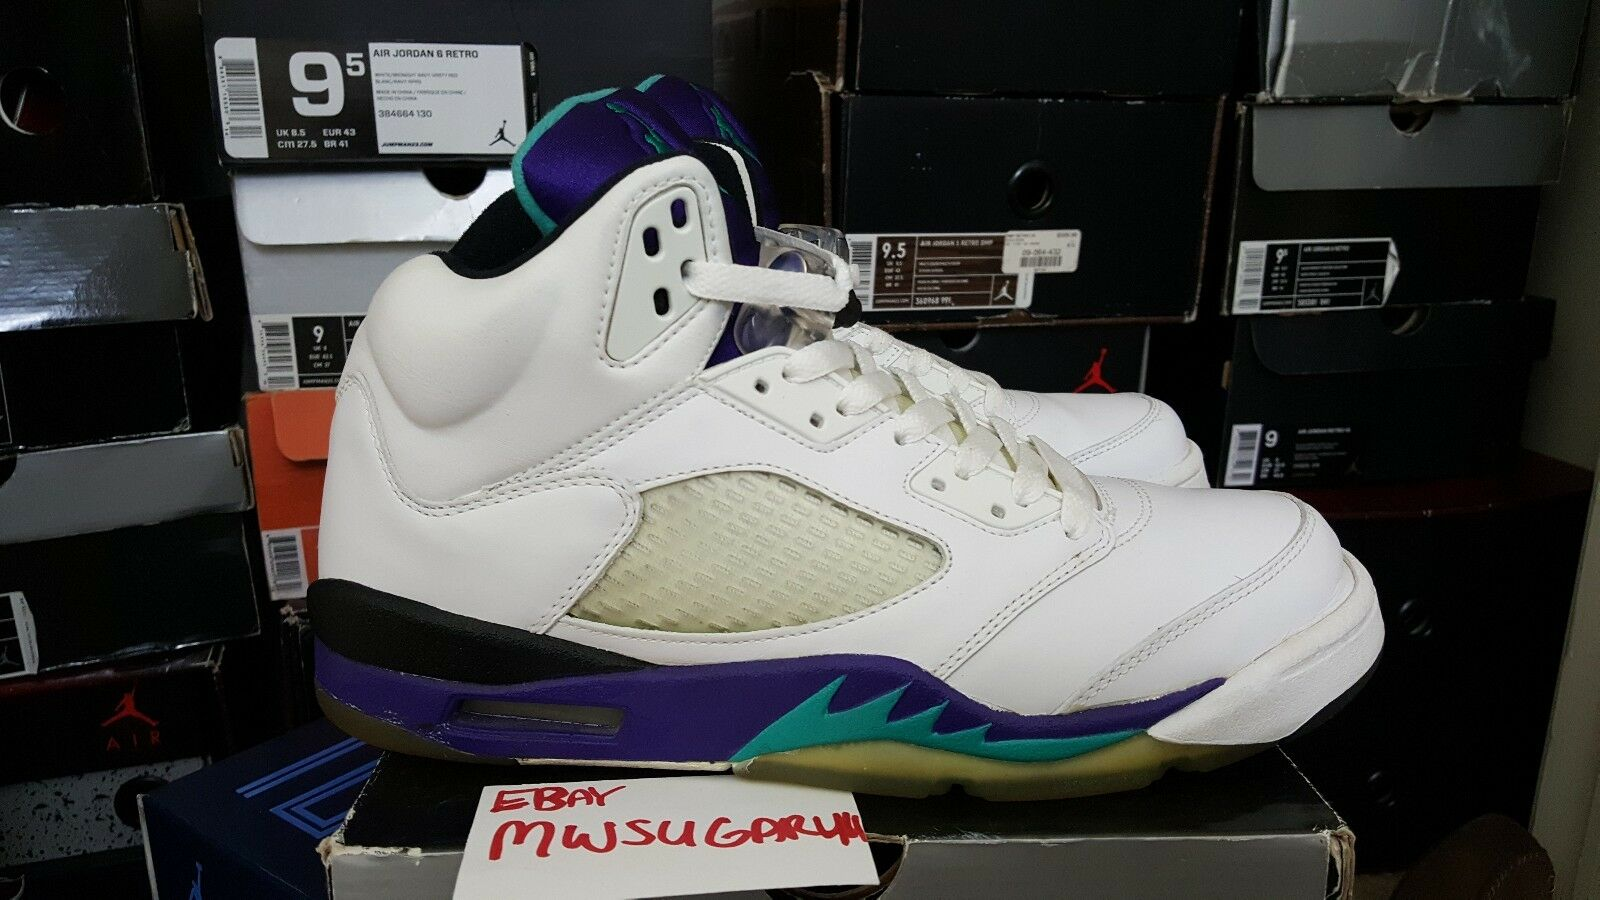 2006 Nike Air Jordan Retro 5 LS Grape Bel Air DB Bin 23 Toro Tokyo Supreme Laser